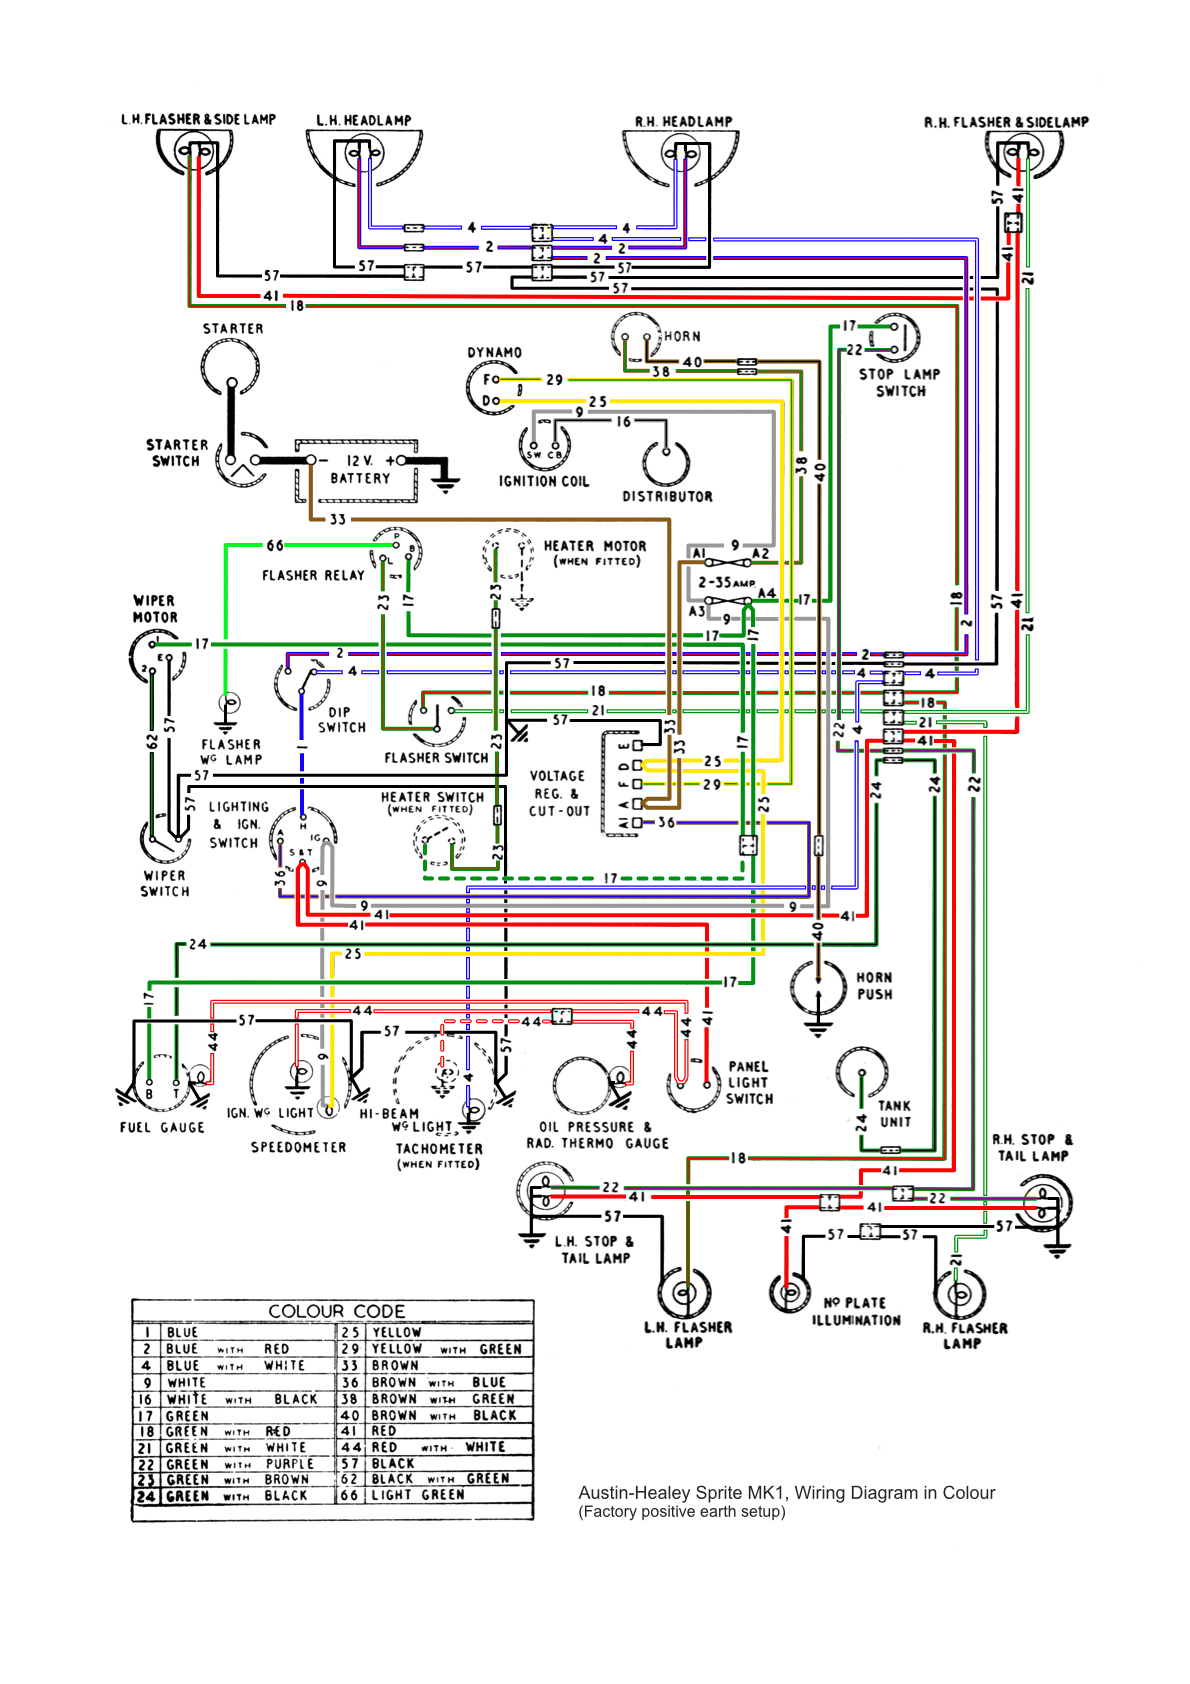 14731302990_7dab766701_o?resize\=665%2C941\&ssl\=1 vine banner wiring diagrams wiring diagrams vine thermostat wiring diagram at readyjetset.co